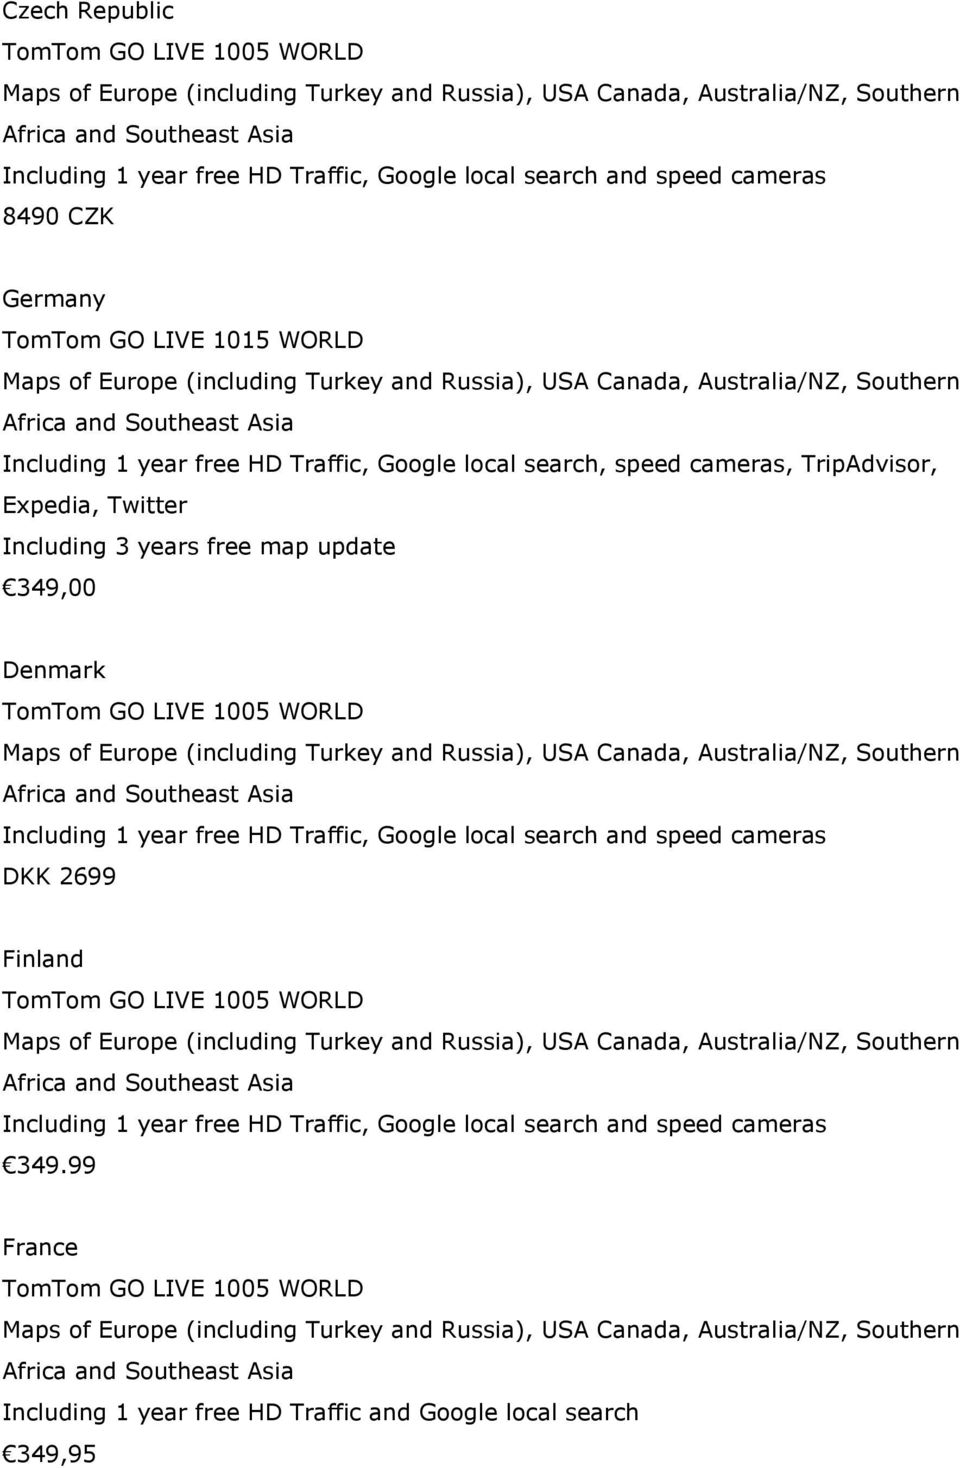 Canada GO 2535 TM World Traveller's edition Maps of North America